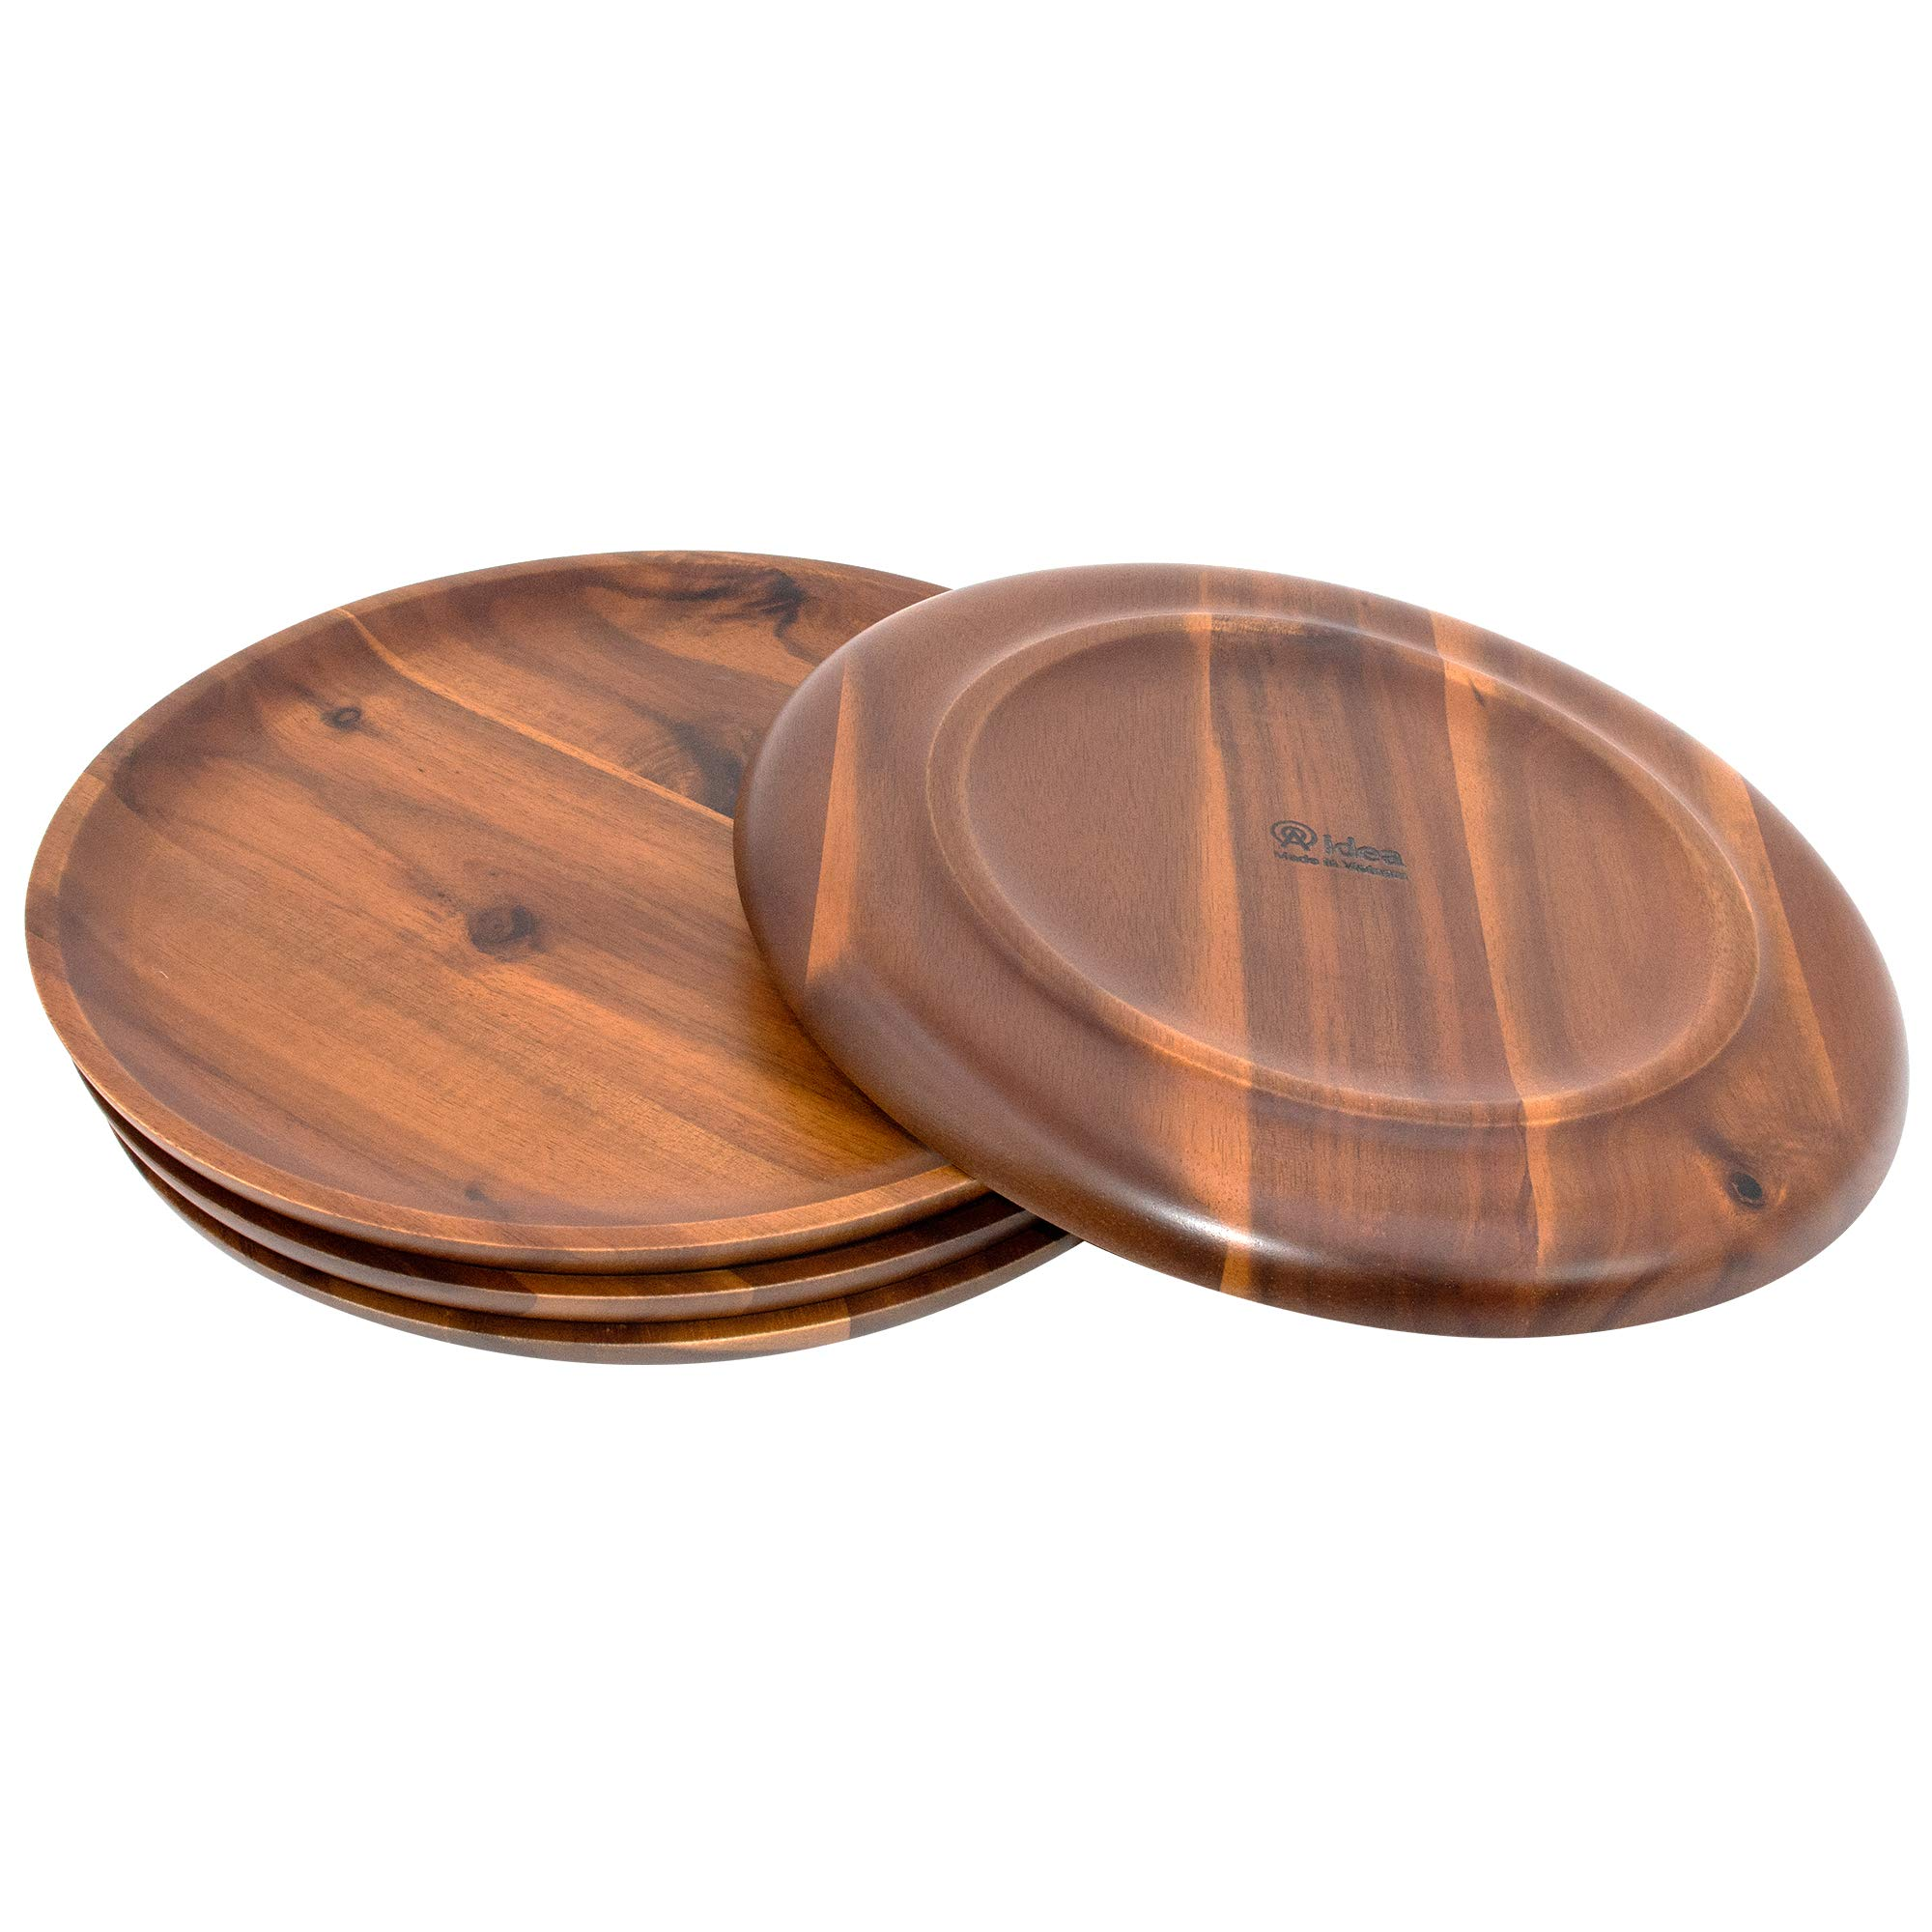 AIDEA Acacia Wood Food Serving Charger Plates - 11 inch Set of 4 Round Wooden Dishes Snack Plates by AIDEA (Image #4)